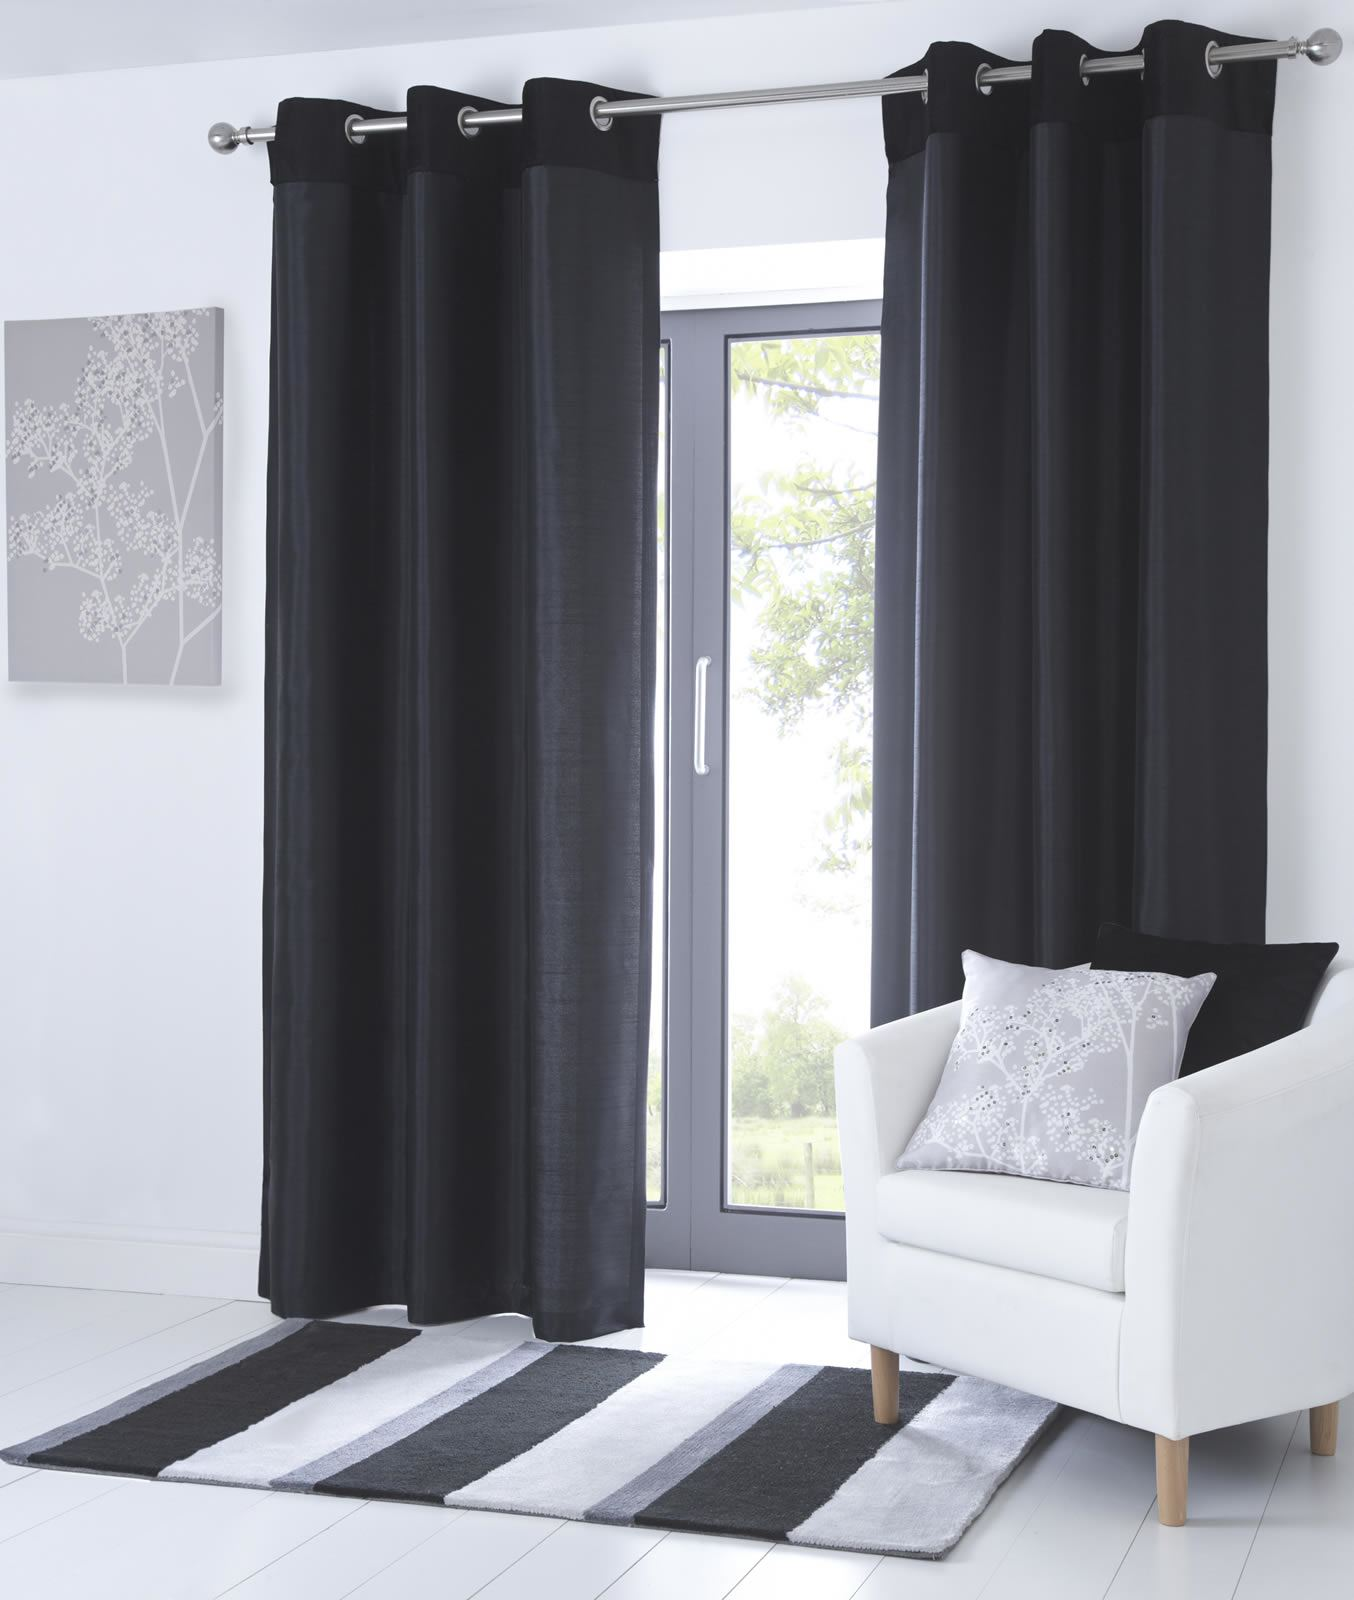 Fully Lined Eyelet Curtains Faux Leather Ready Made